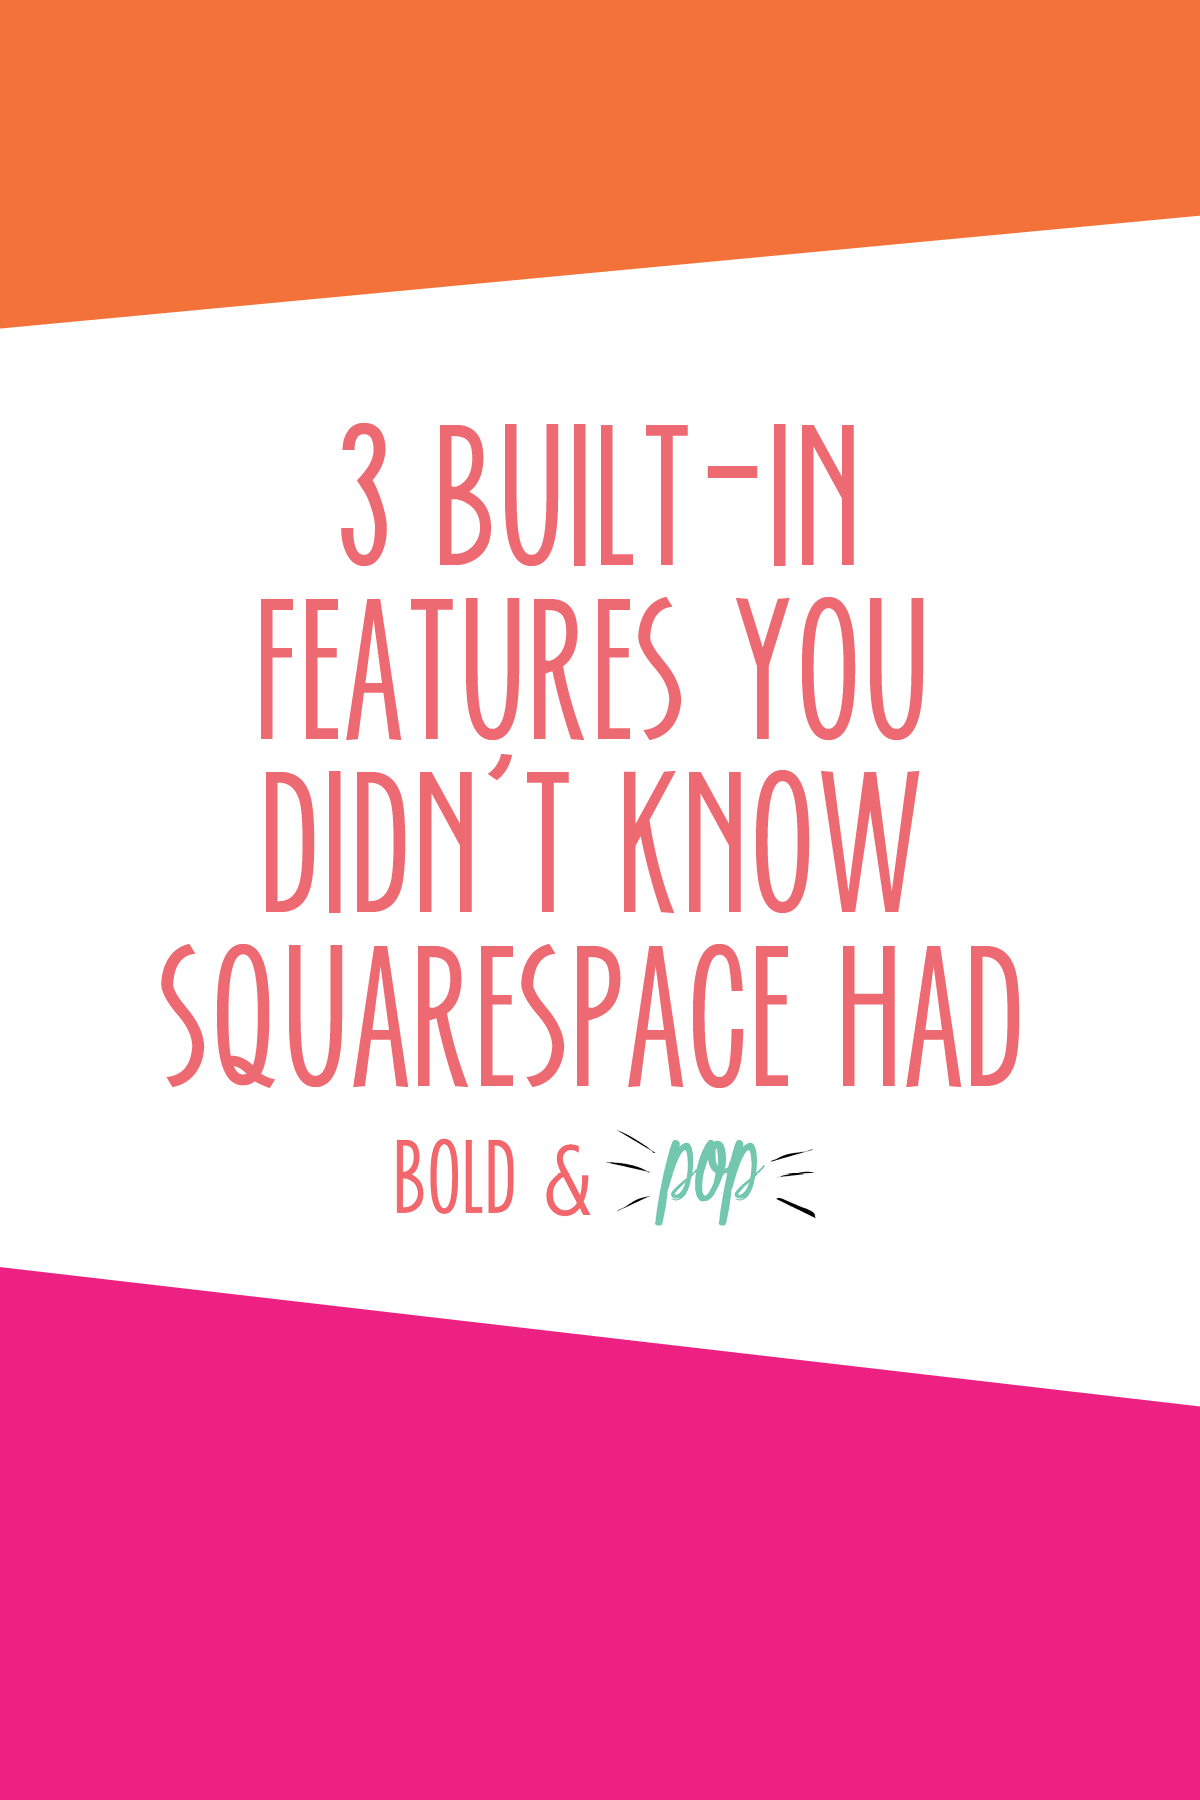 Bold & Pop : 3 Built-In Features You Didn't Know Squarespace Had